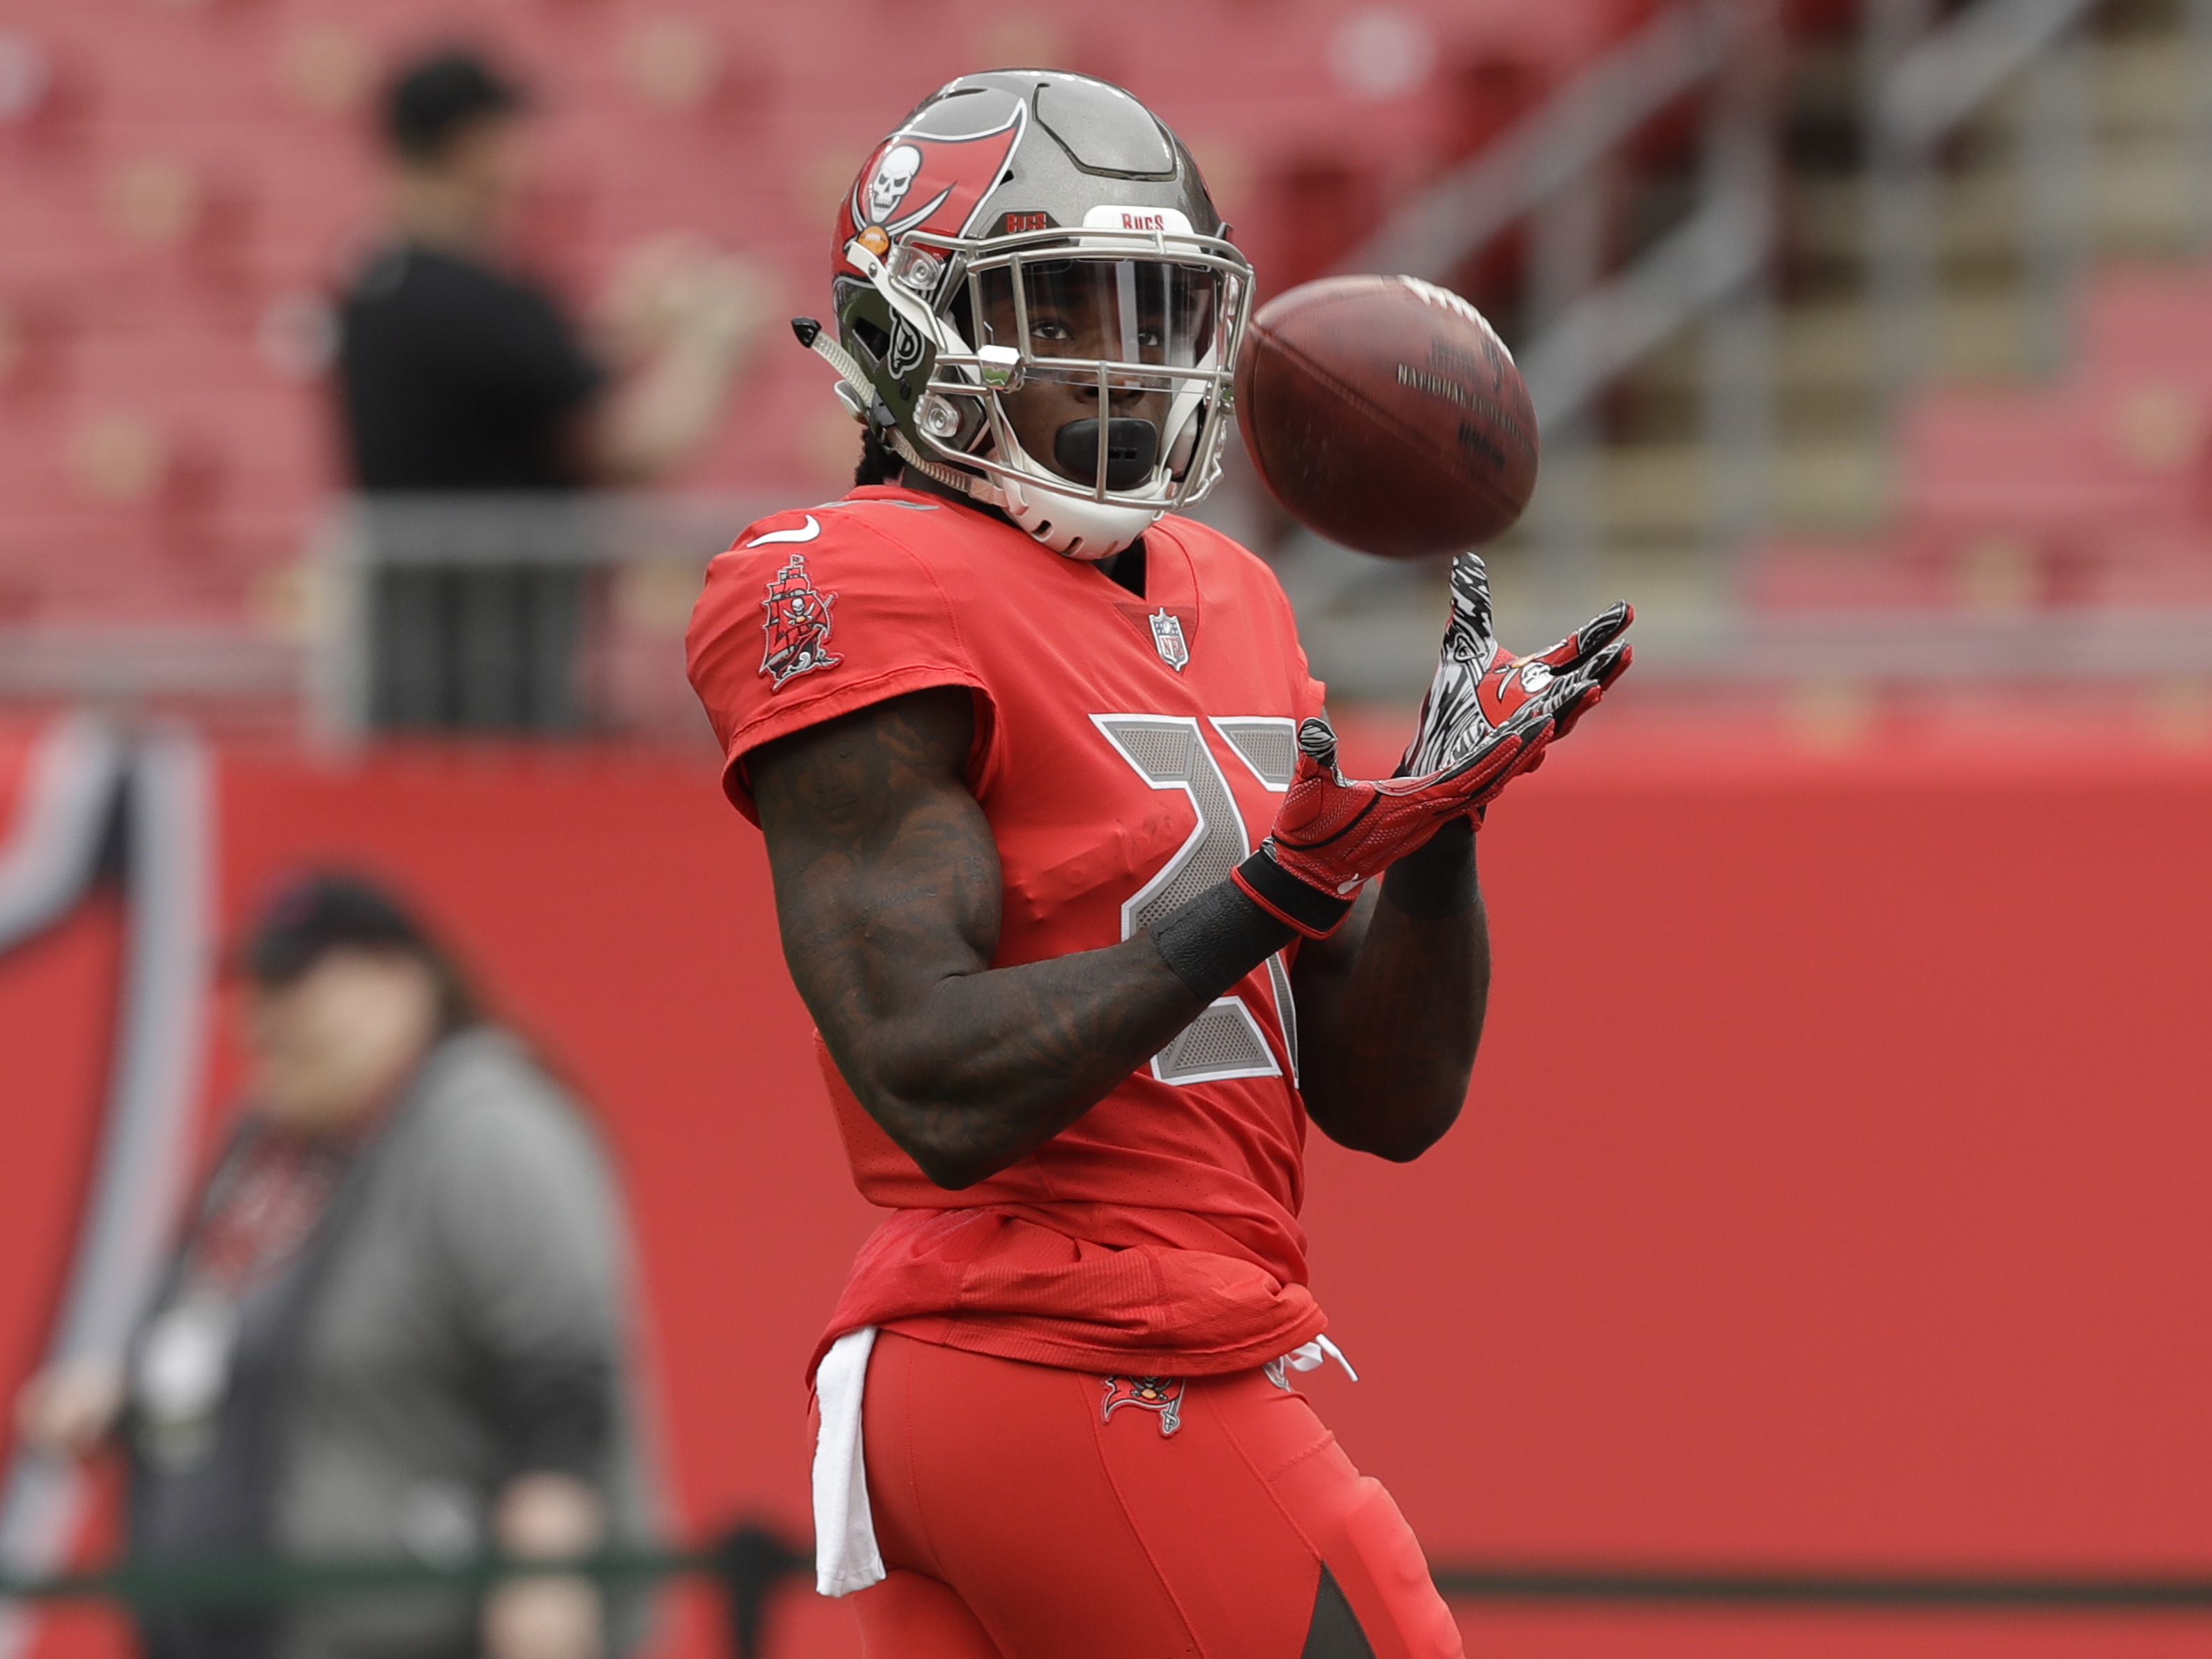 premium selection 6a1d5 46bab Ronald Jones ready to put disappointing season in past - NFL.com